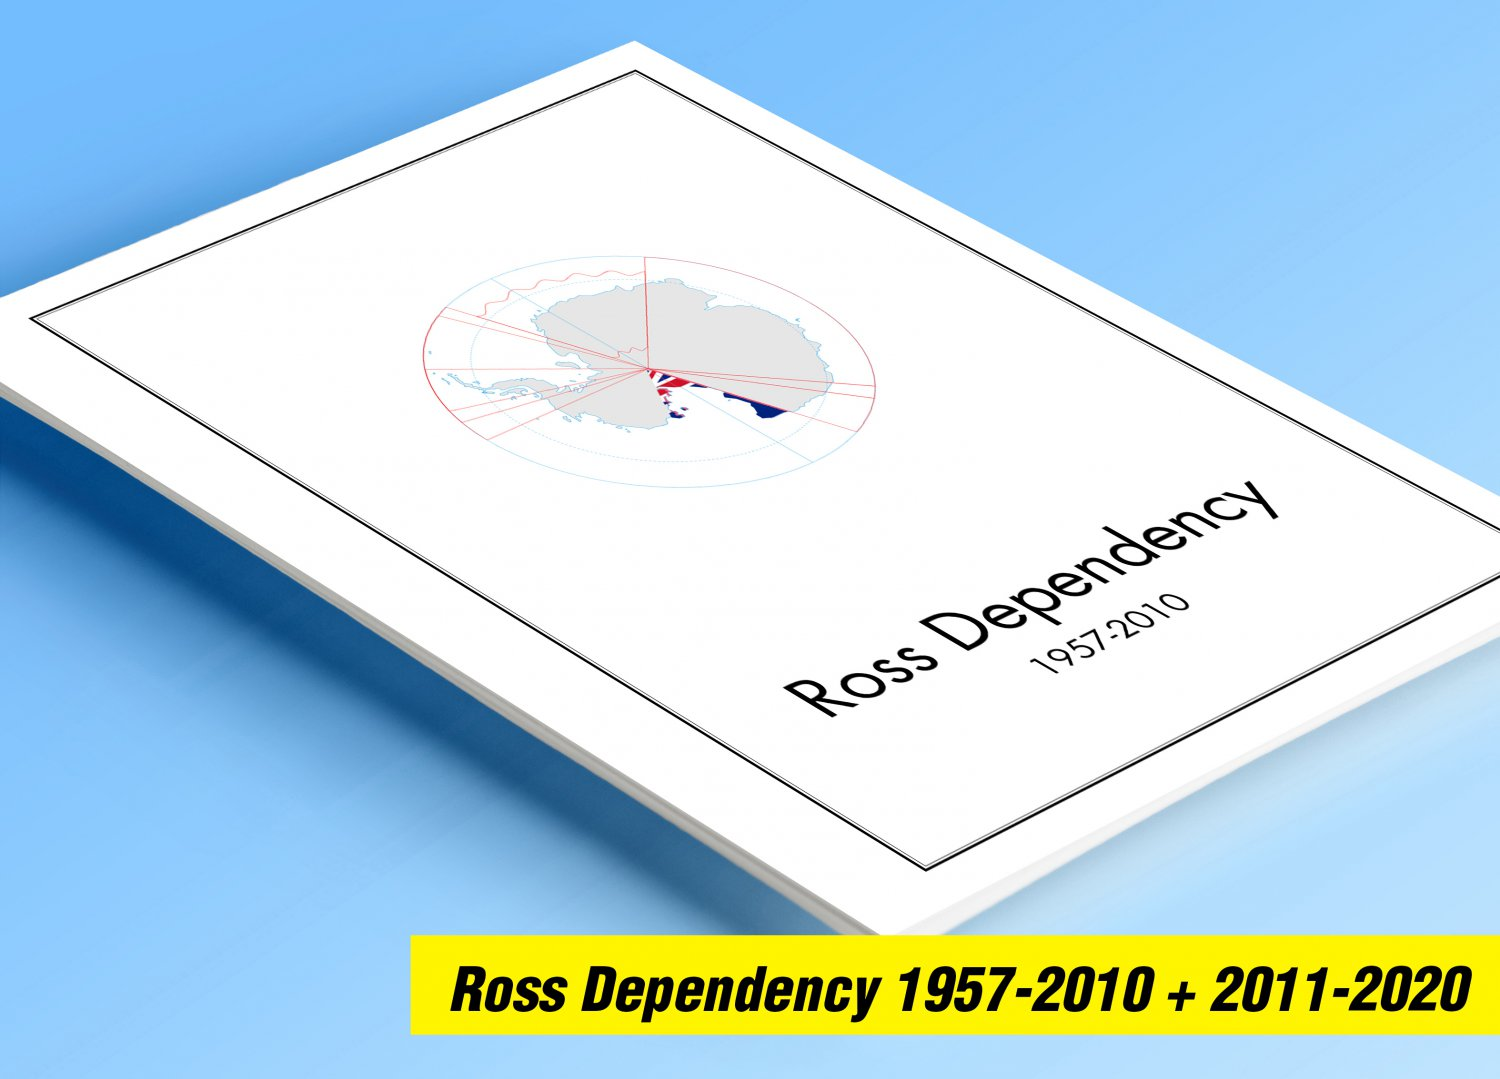 ROSS DEPENDENCY 1957-2010 + 2011-2020 COLOR PRINTED STAMP ALBUM PAGES (28 illustrated pages)